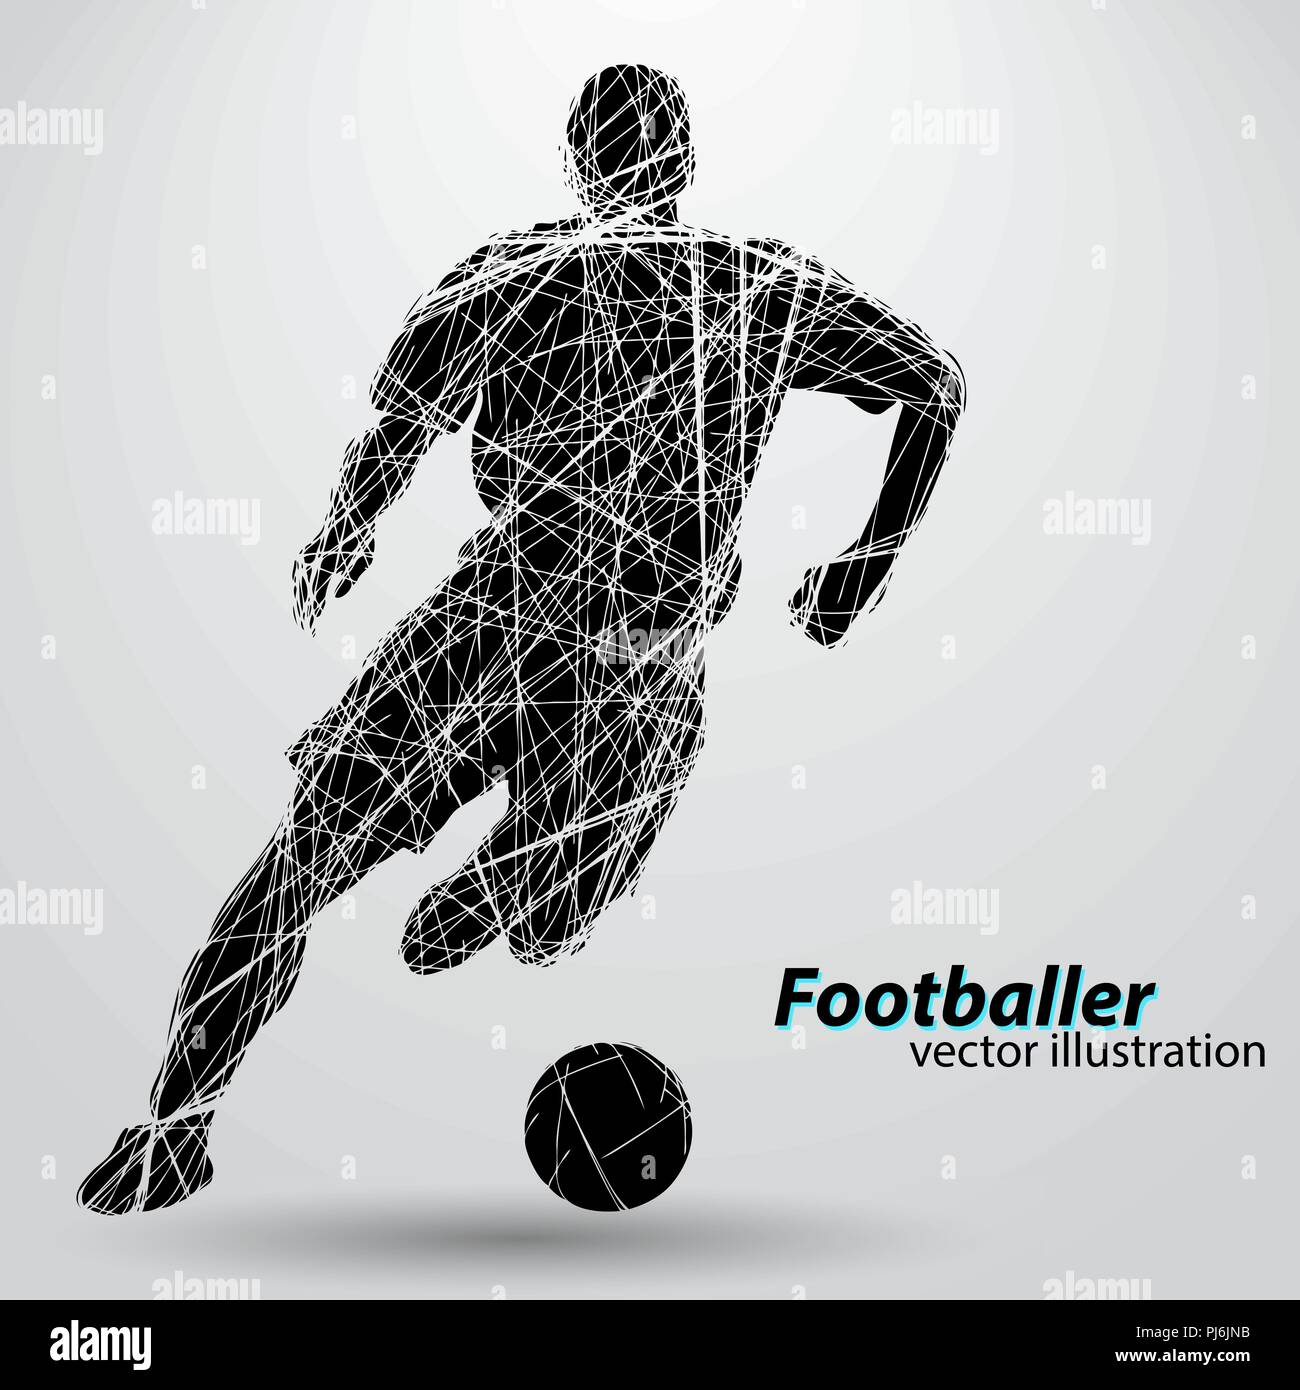 silhouette of a football player. Text and background on a separate layer, color can be changed in one click. Stock Vector